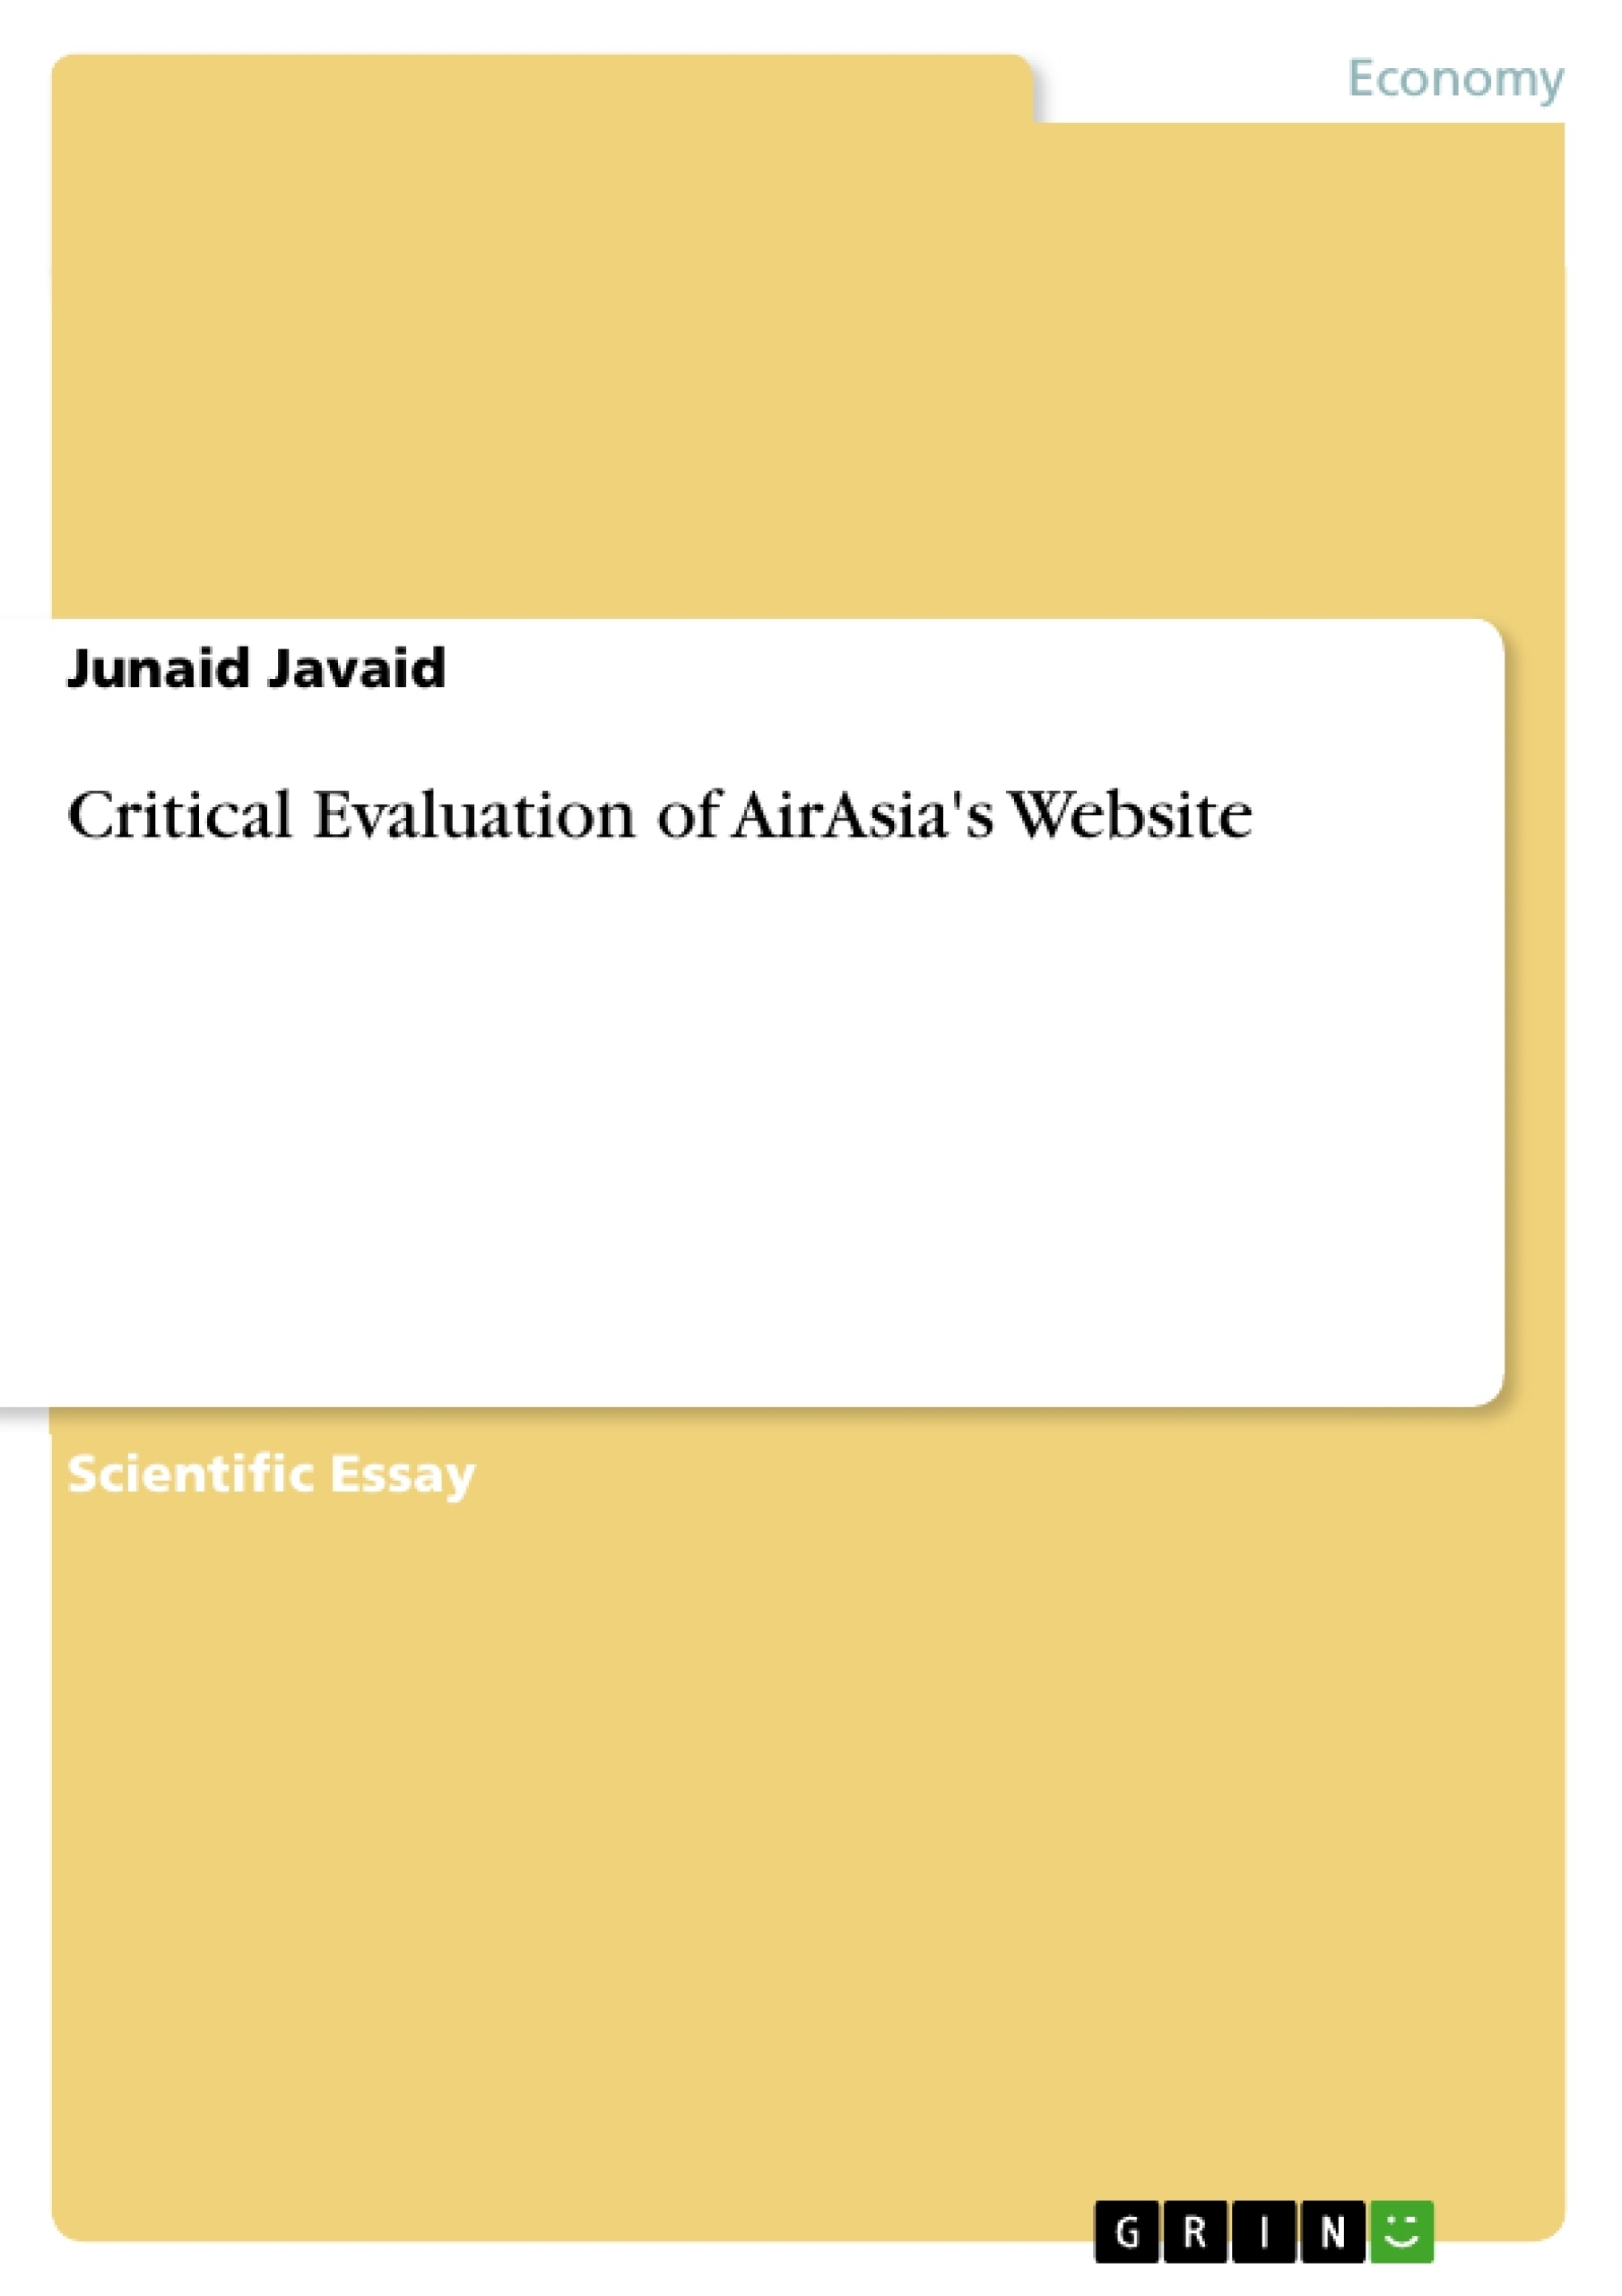 Title: Critical Evaluation of AirAsia's Website